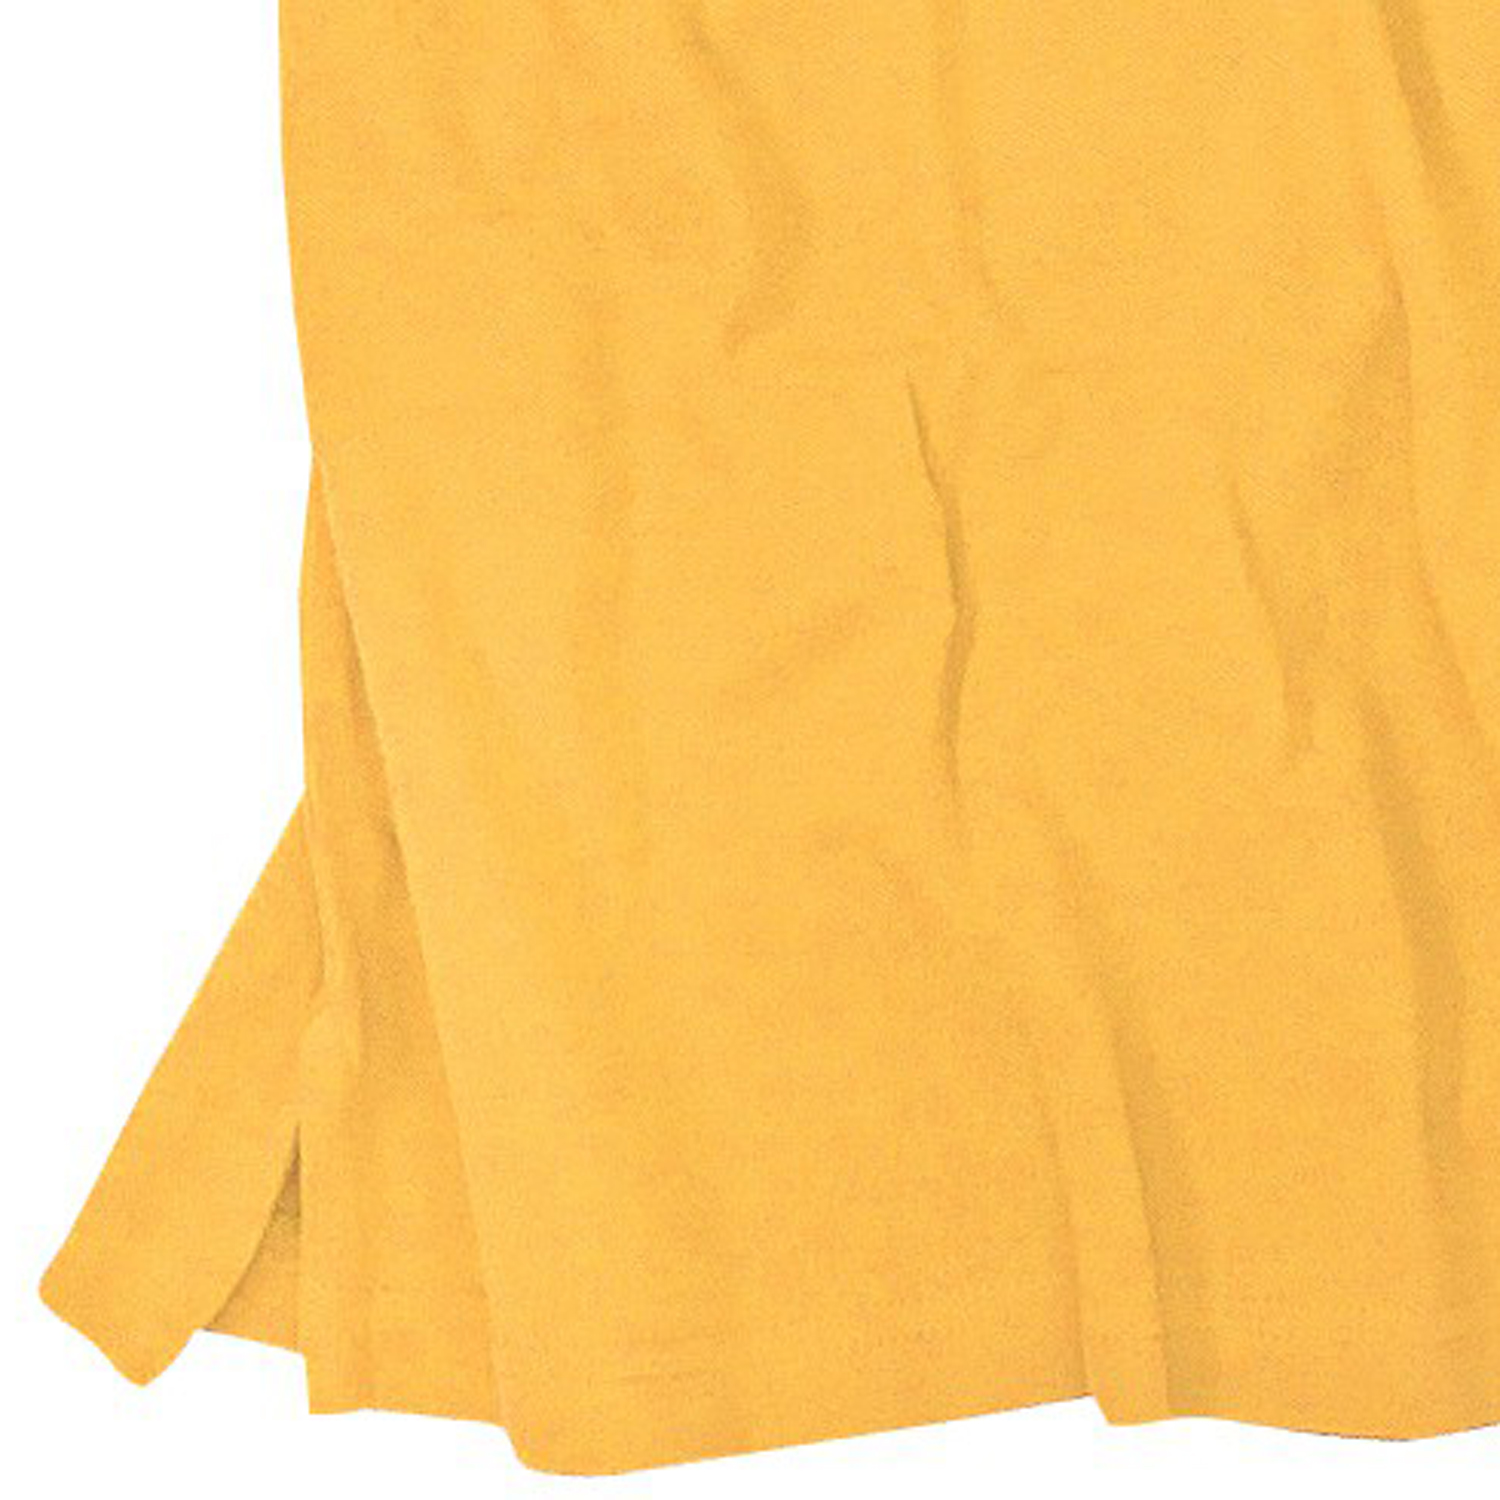 Detail Image to Polo shirt in yellow by Redfield in plus sizes up to 10XL